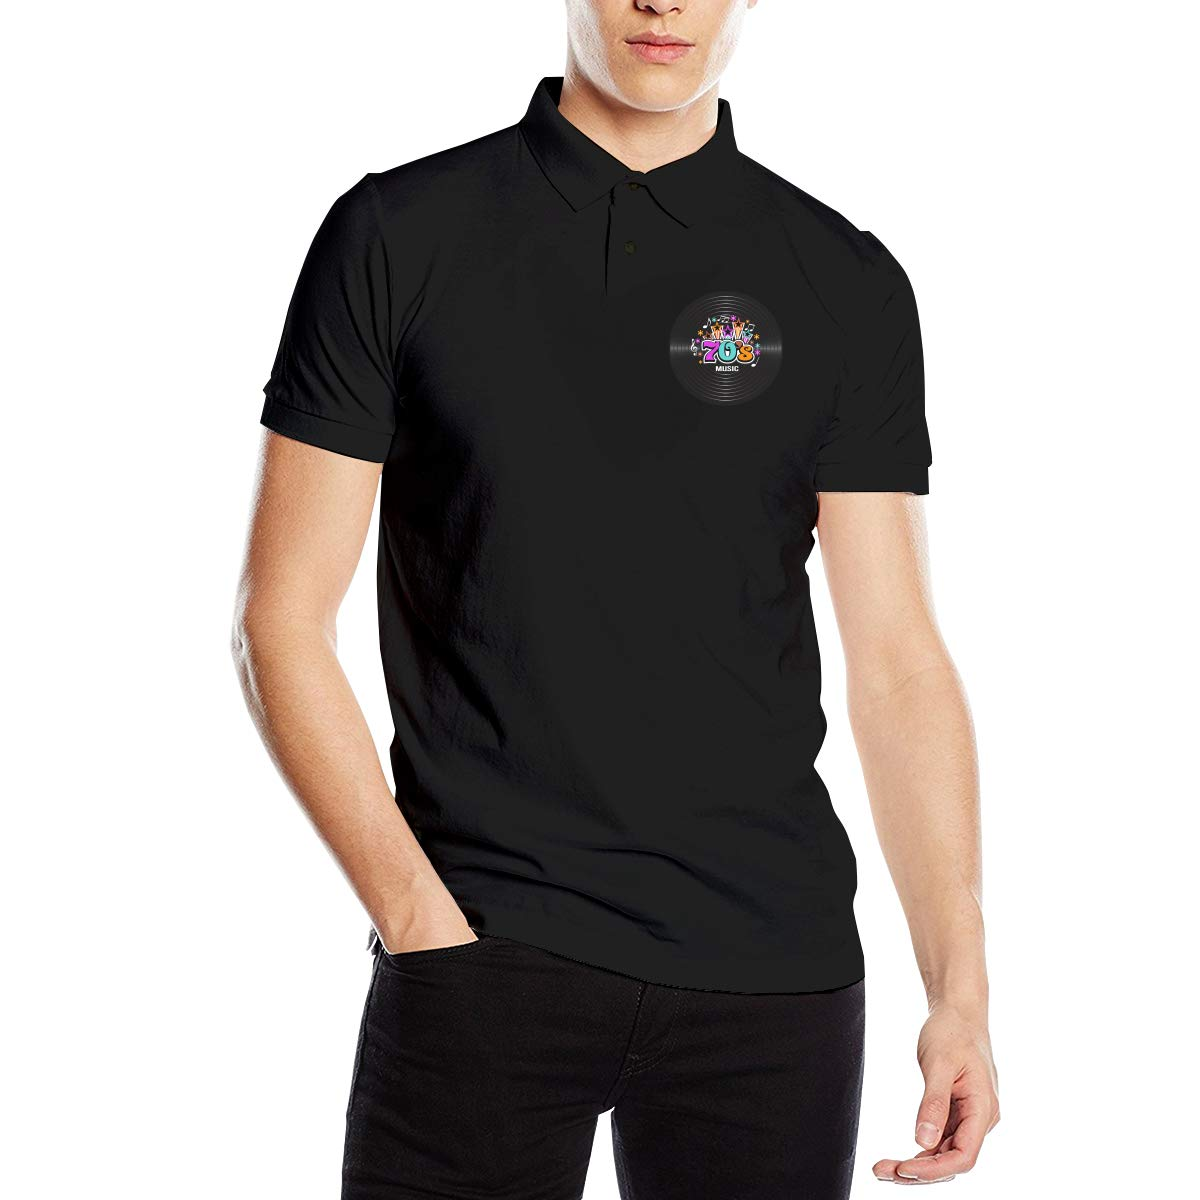 Hengteng Mens Personalized Sweaty 70s Music Discography Short Sleeve Cool Polo Shirt Black